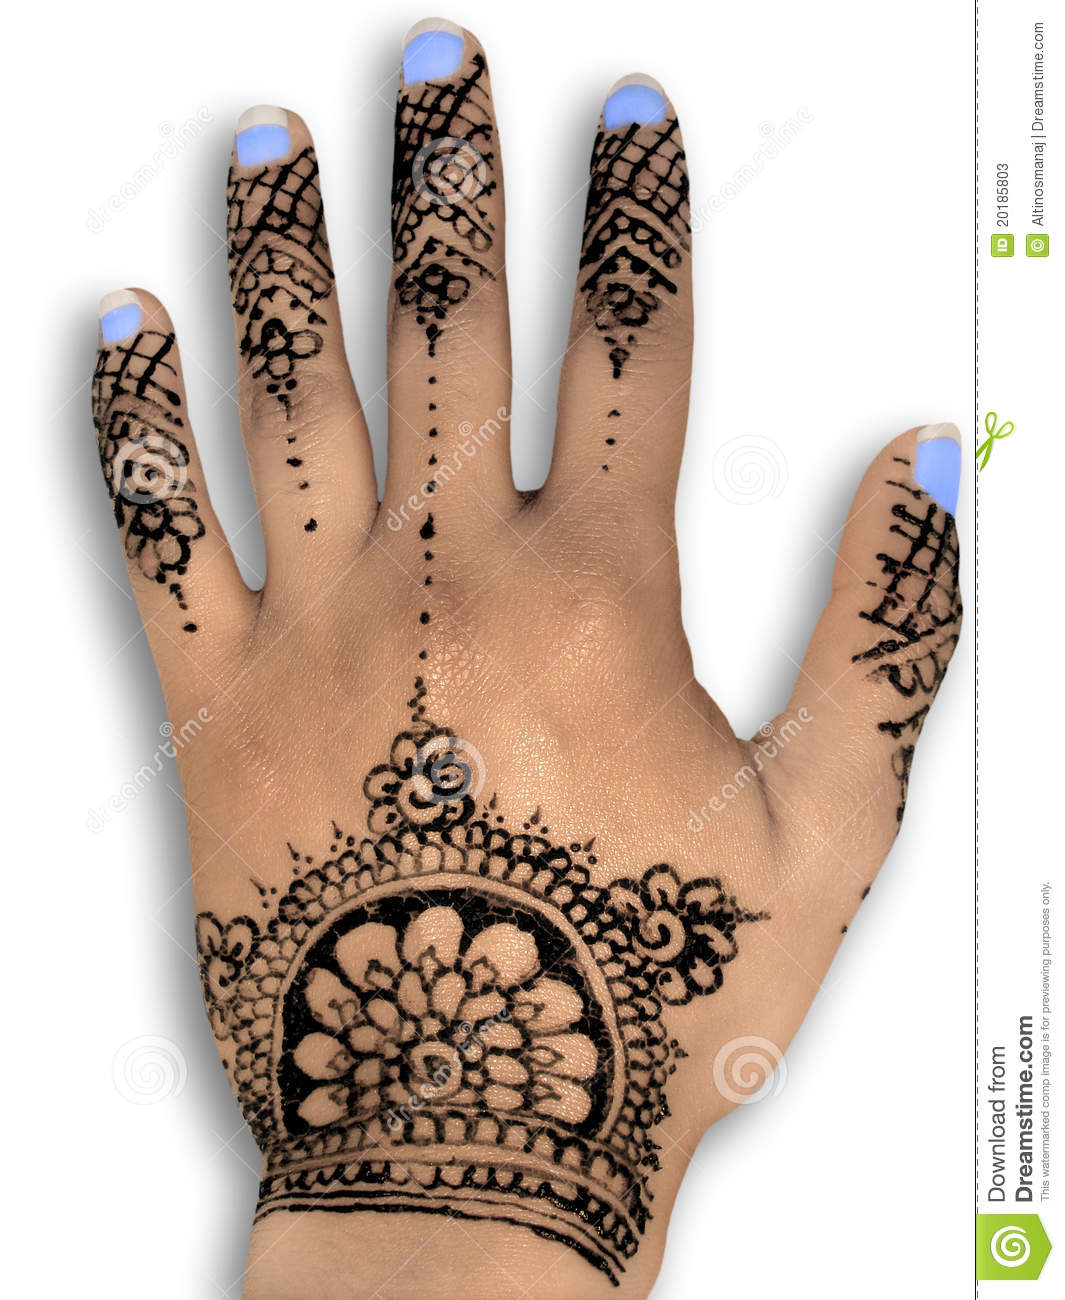 Henna hena mehendi design - isolated blue nails and grey shadow. No ...